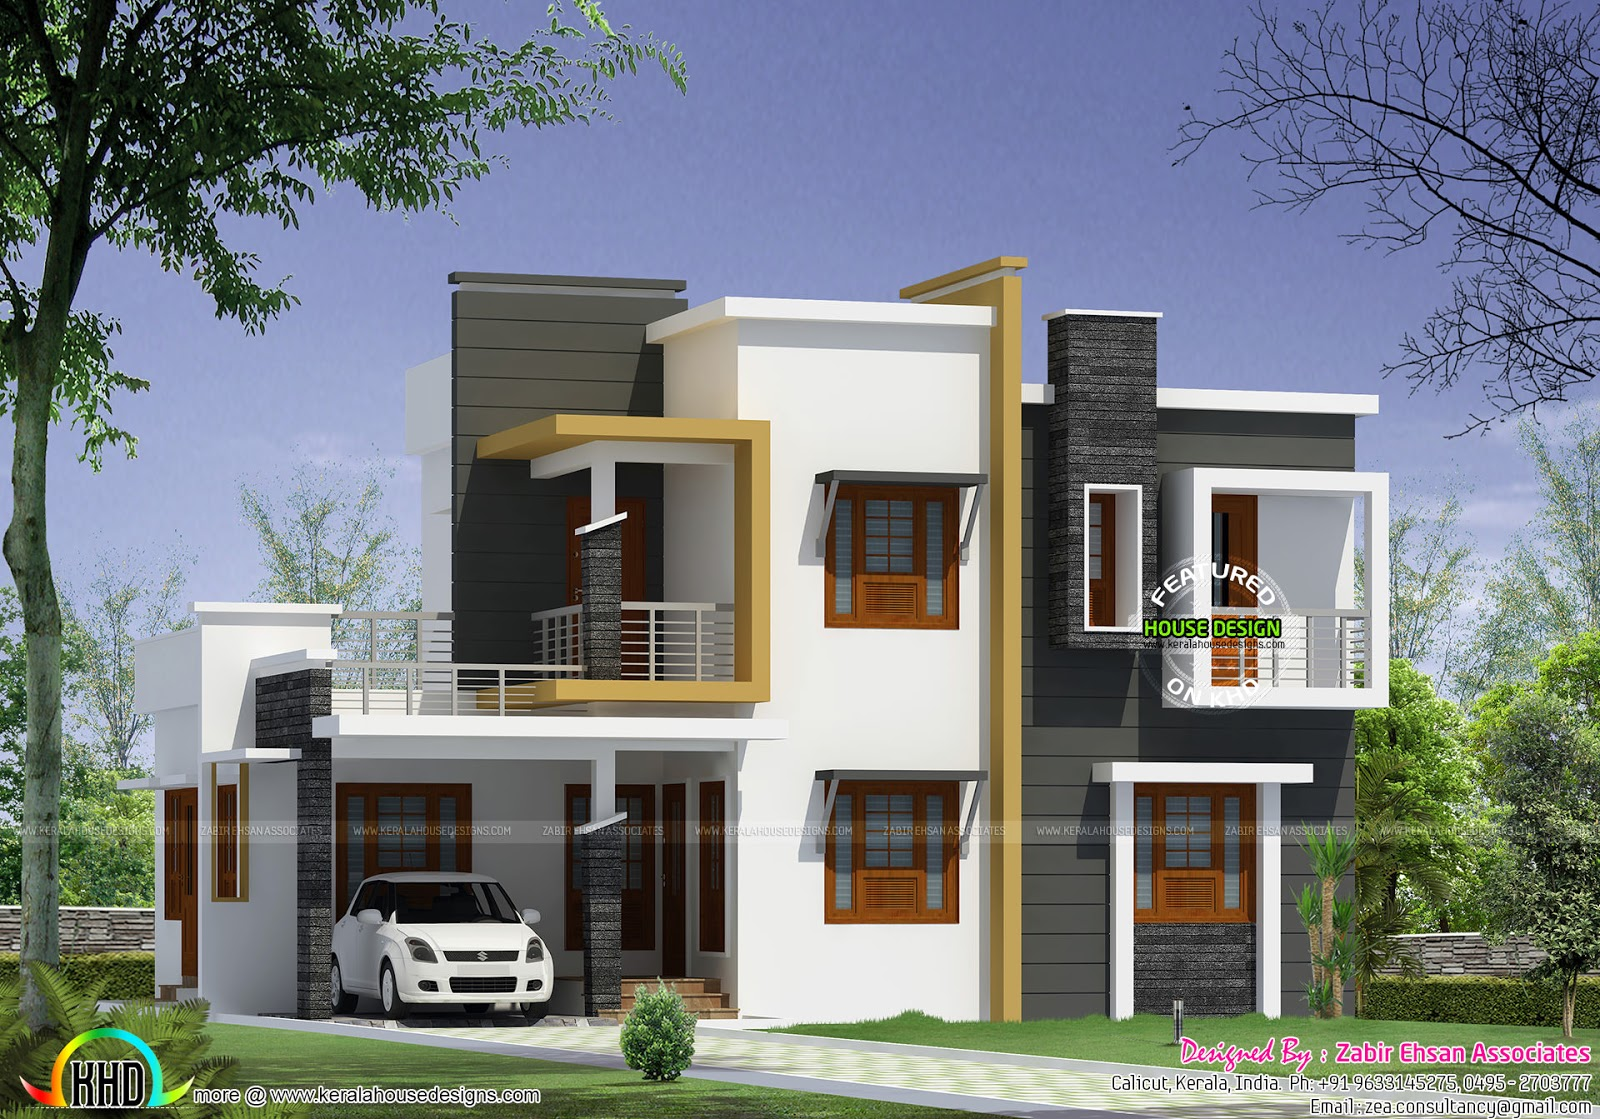 Box type modern house plan kerala home design and floor for Home design plans